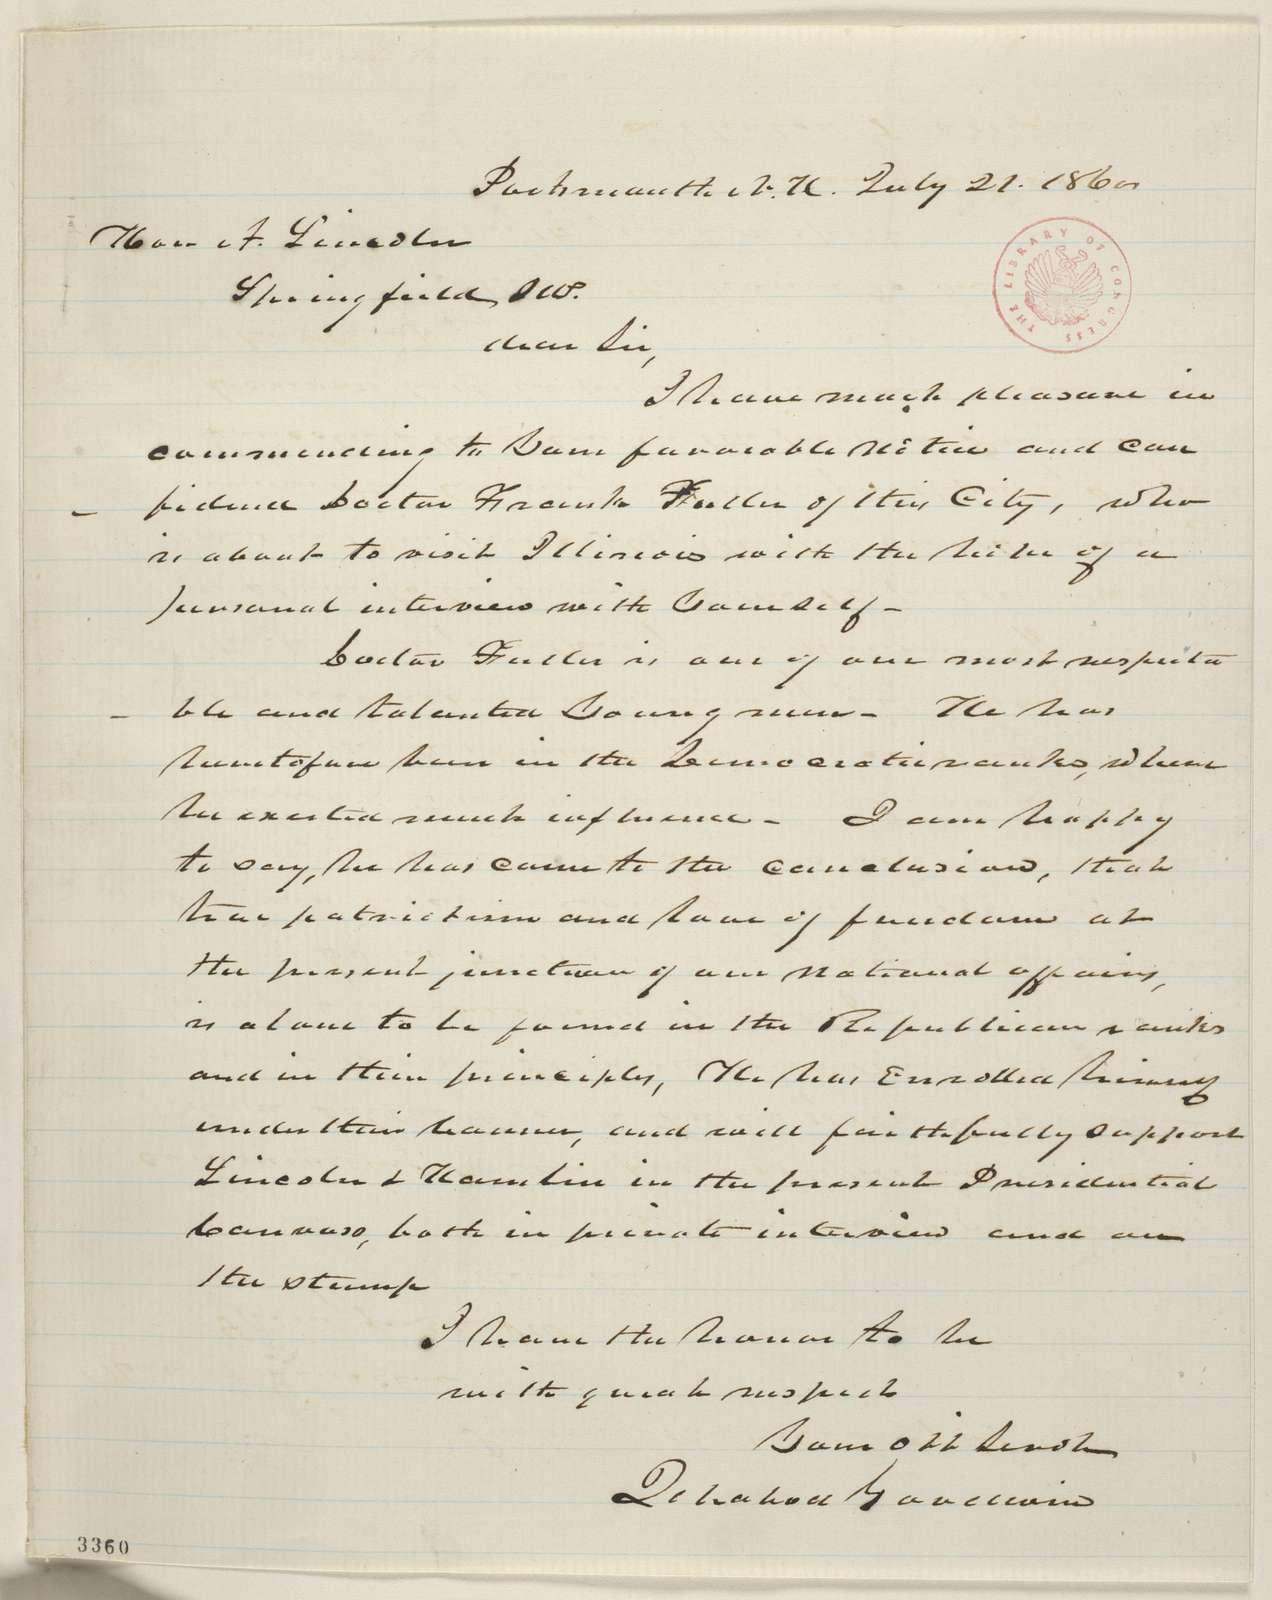 Abraham Lincoln papers: Series 1. General Correspondence. 1833-1916: Ichabod Goodwin to Abraham Lincoln, Saturday, July 21, 1860 (Introduction)